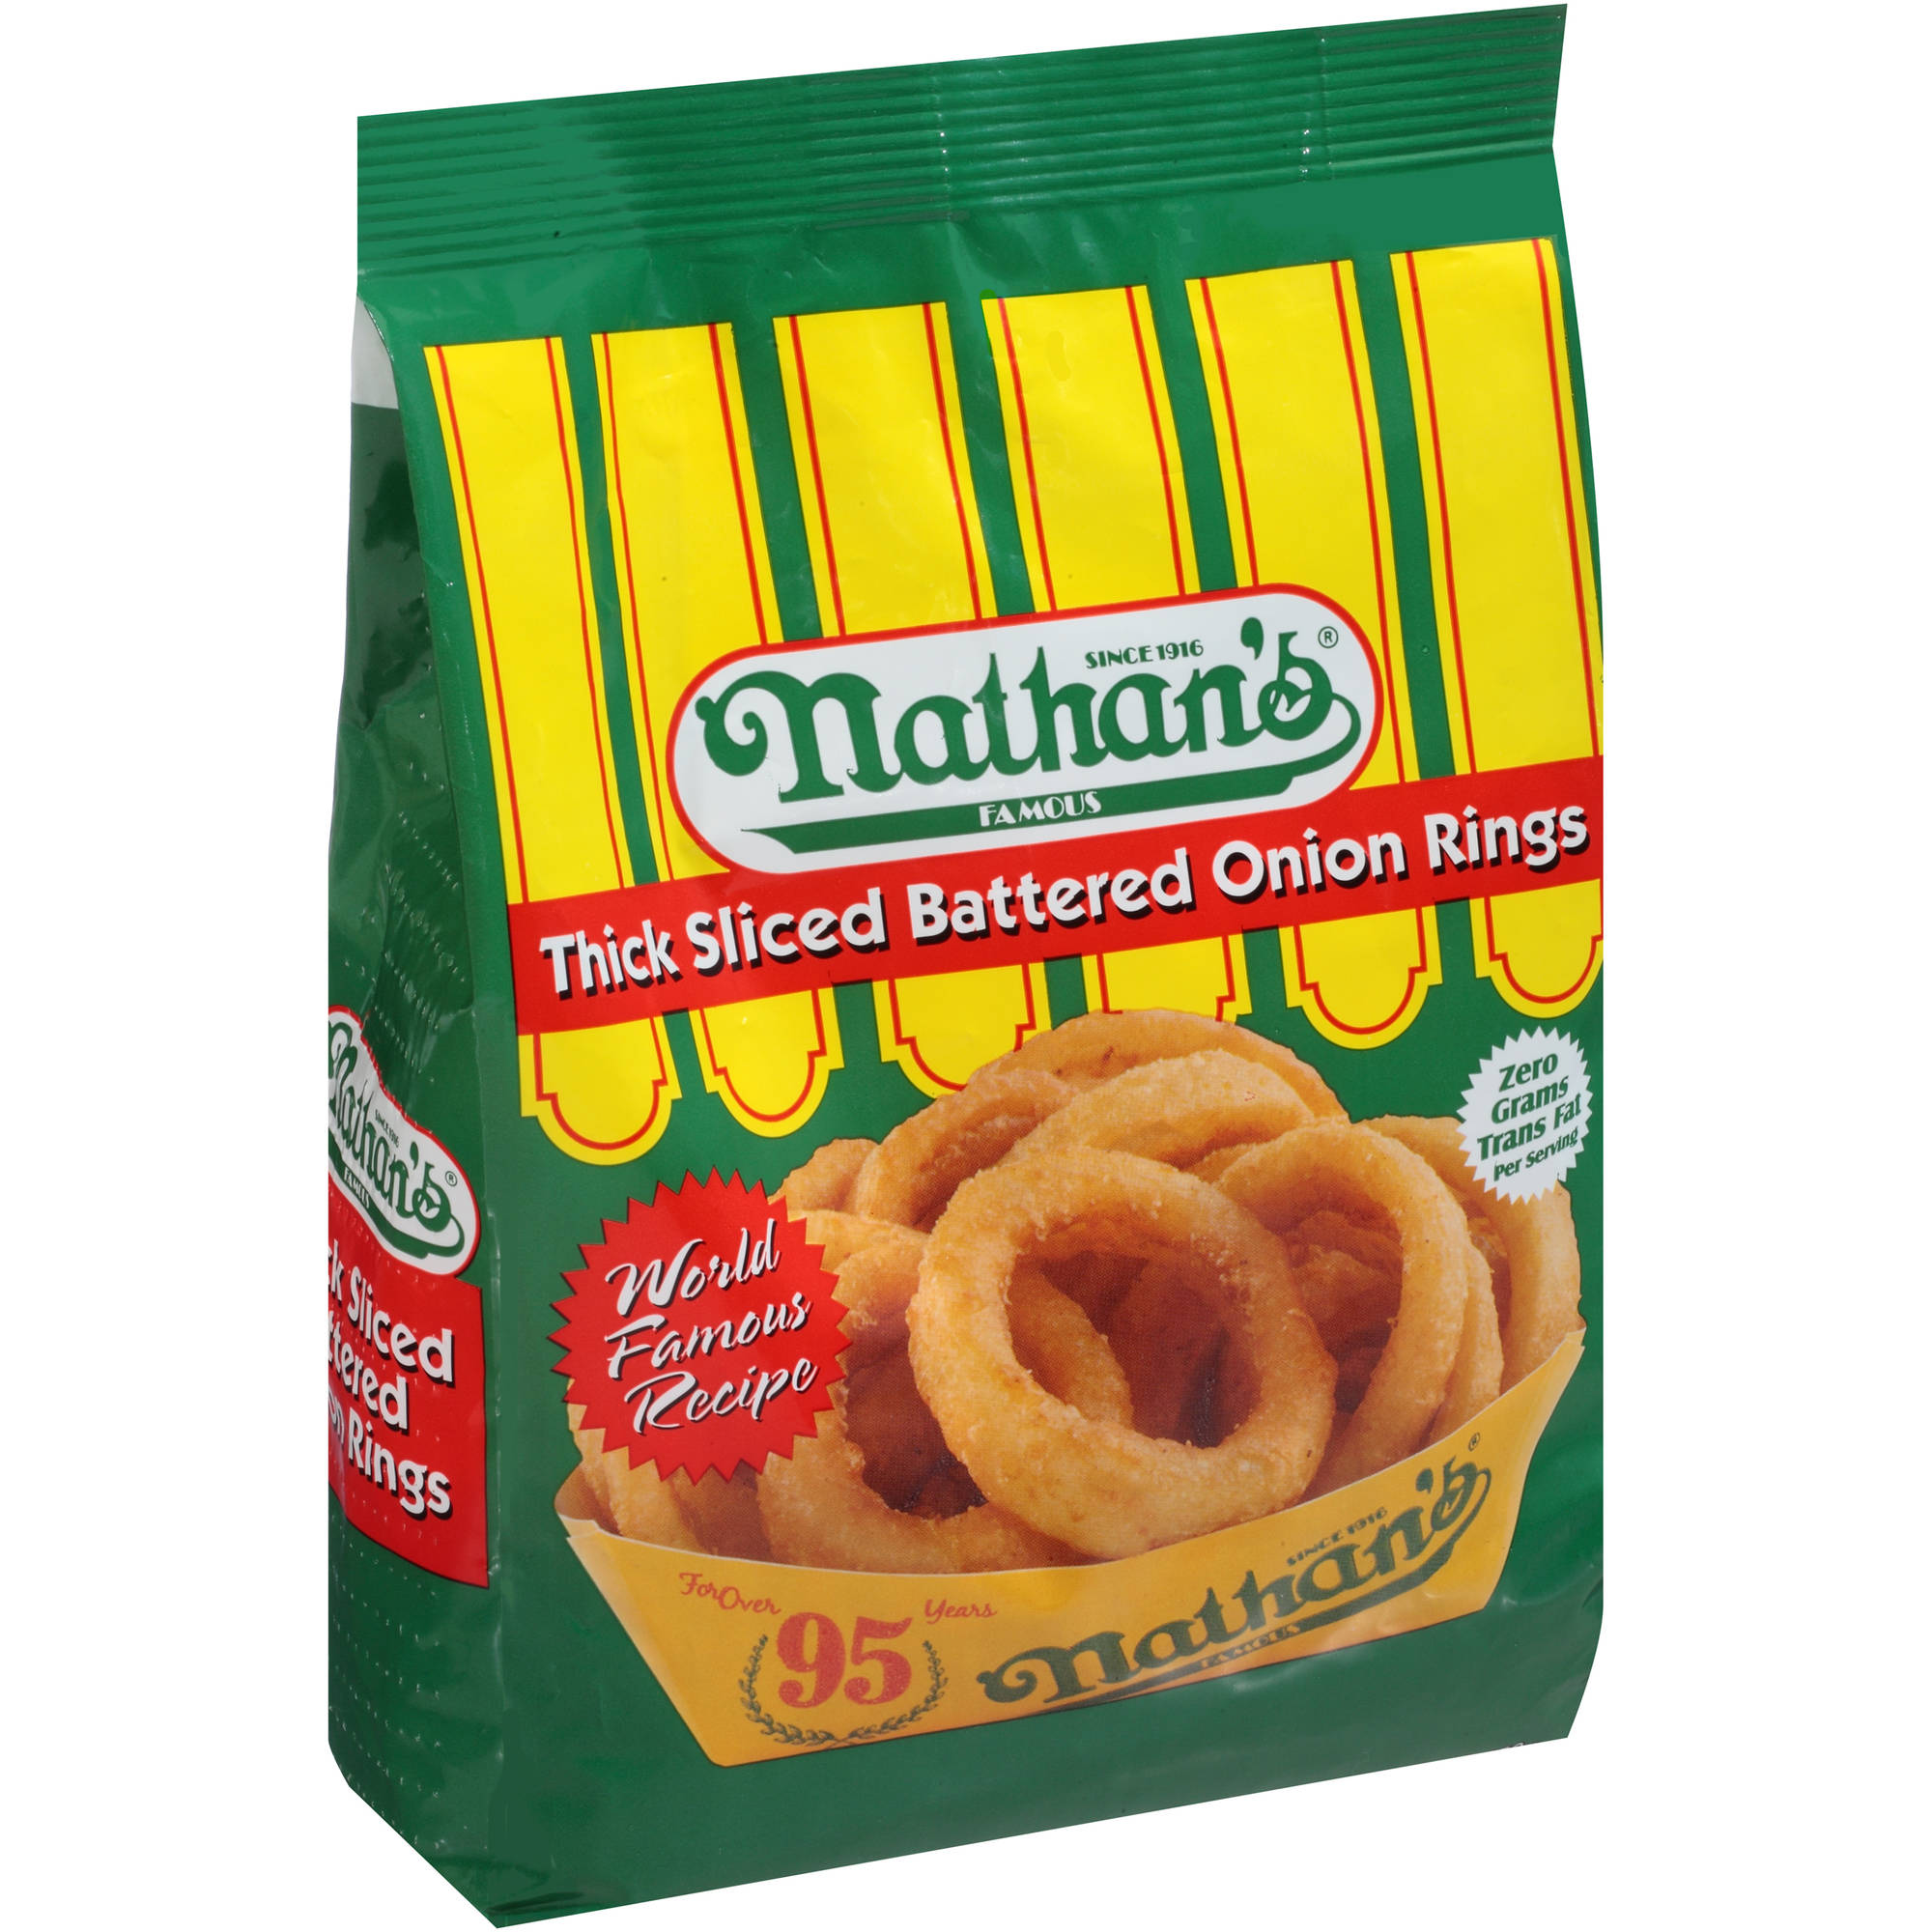 Nathan's Famous Thick Sliced Battered Onion Rings, 16 oz